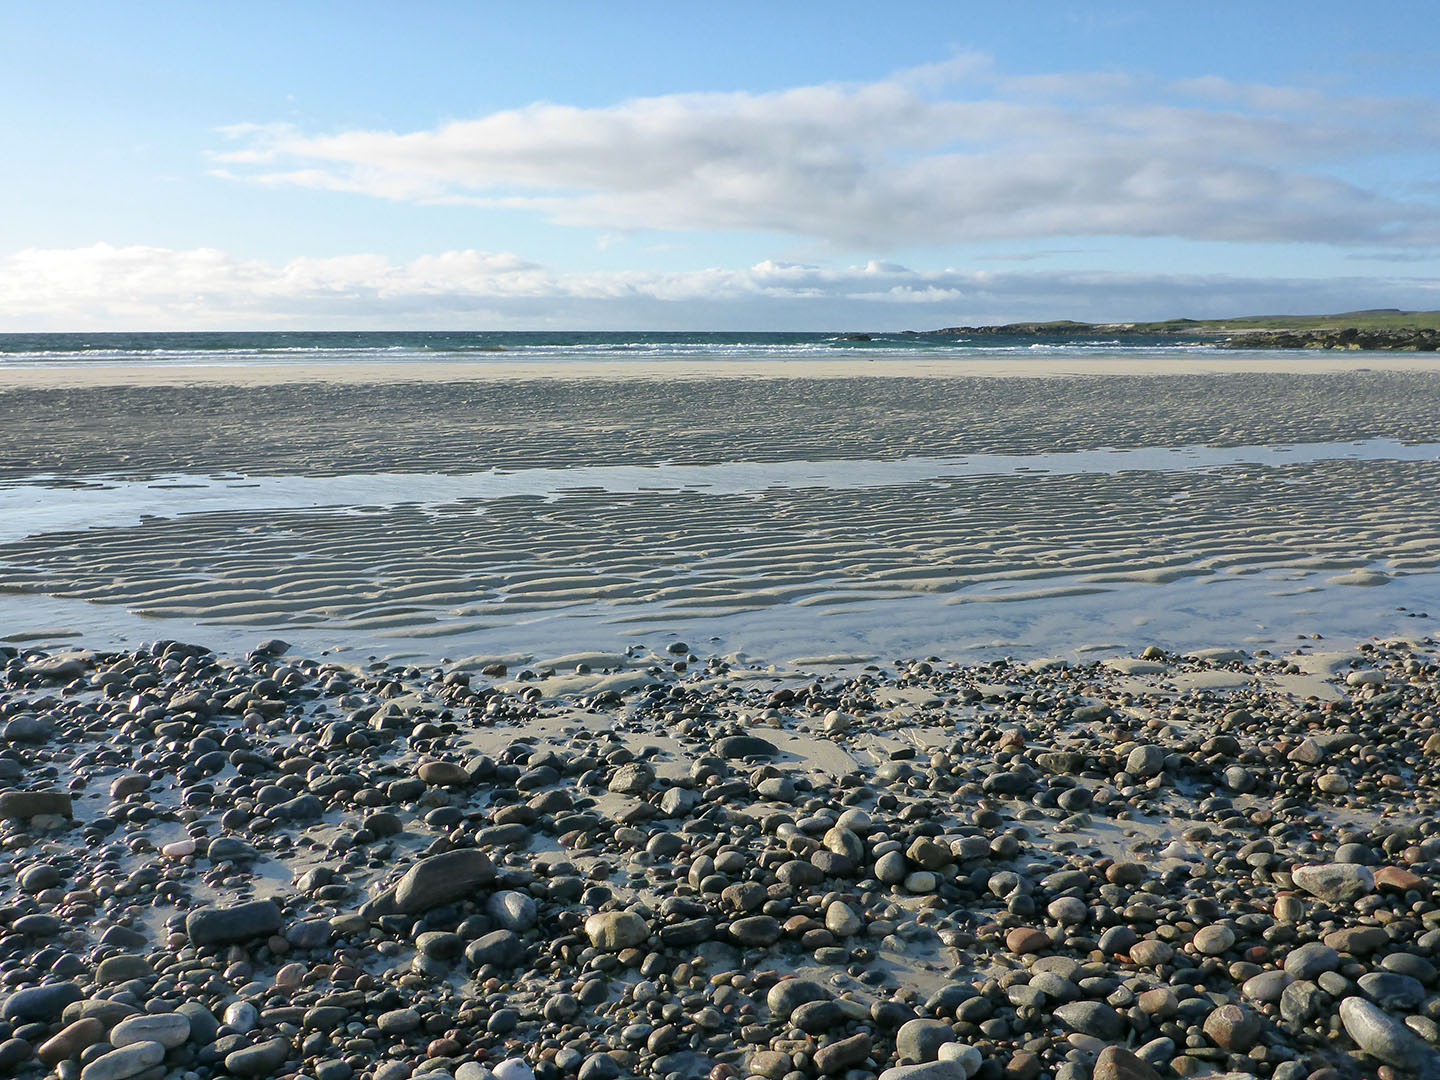 16 Traigh Stir, tide out